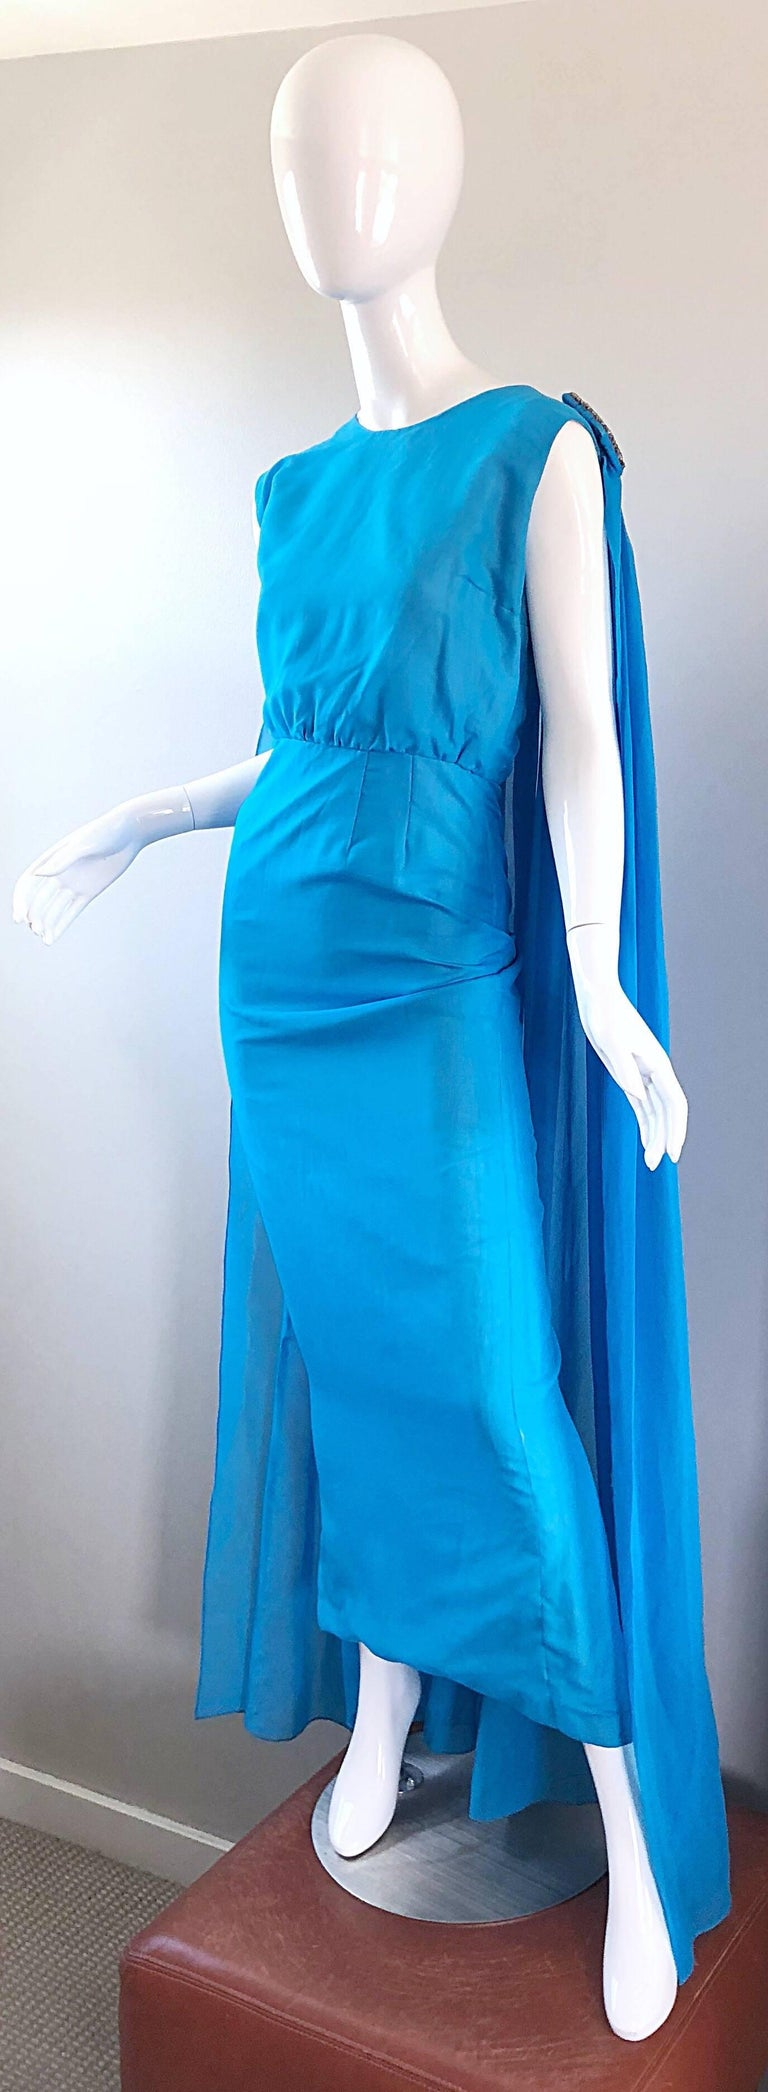 Incredible 1960s Turquoise Blue Chiffon Rhinestone Encrusted Vintage Cape Gown For Sale 1